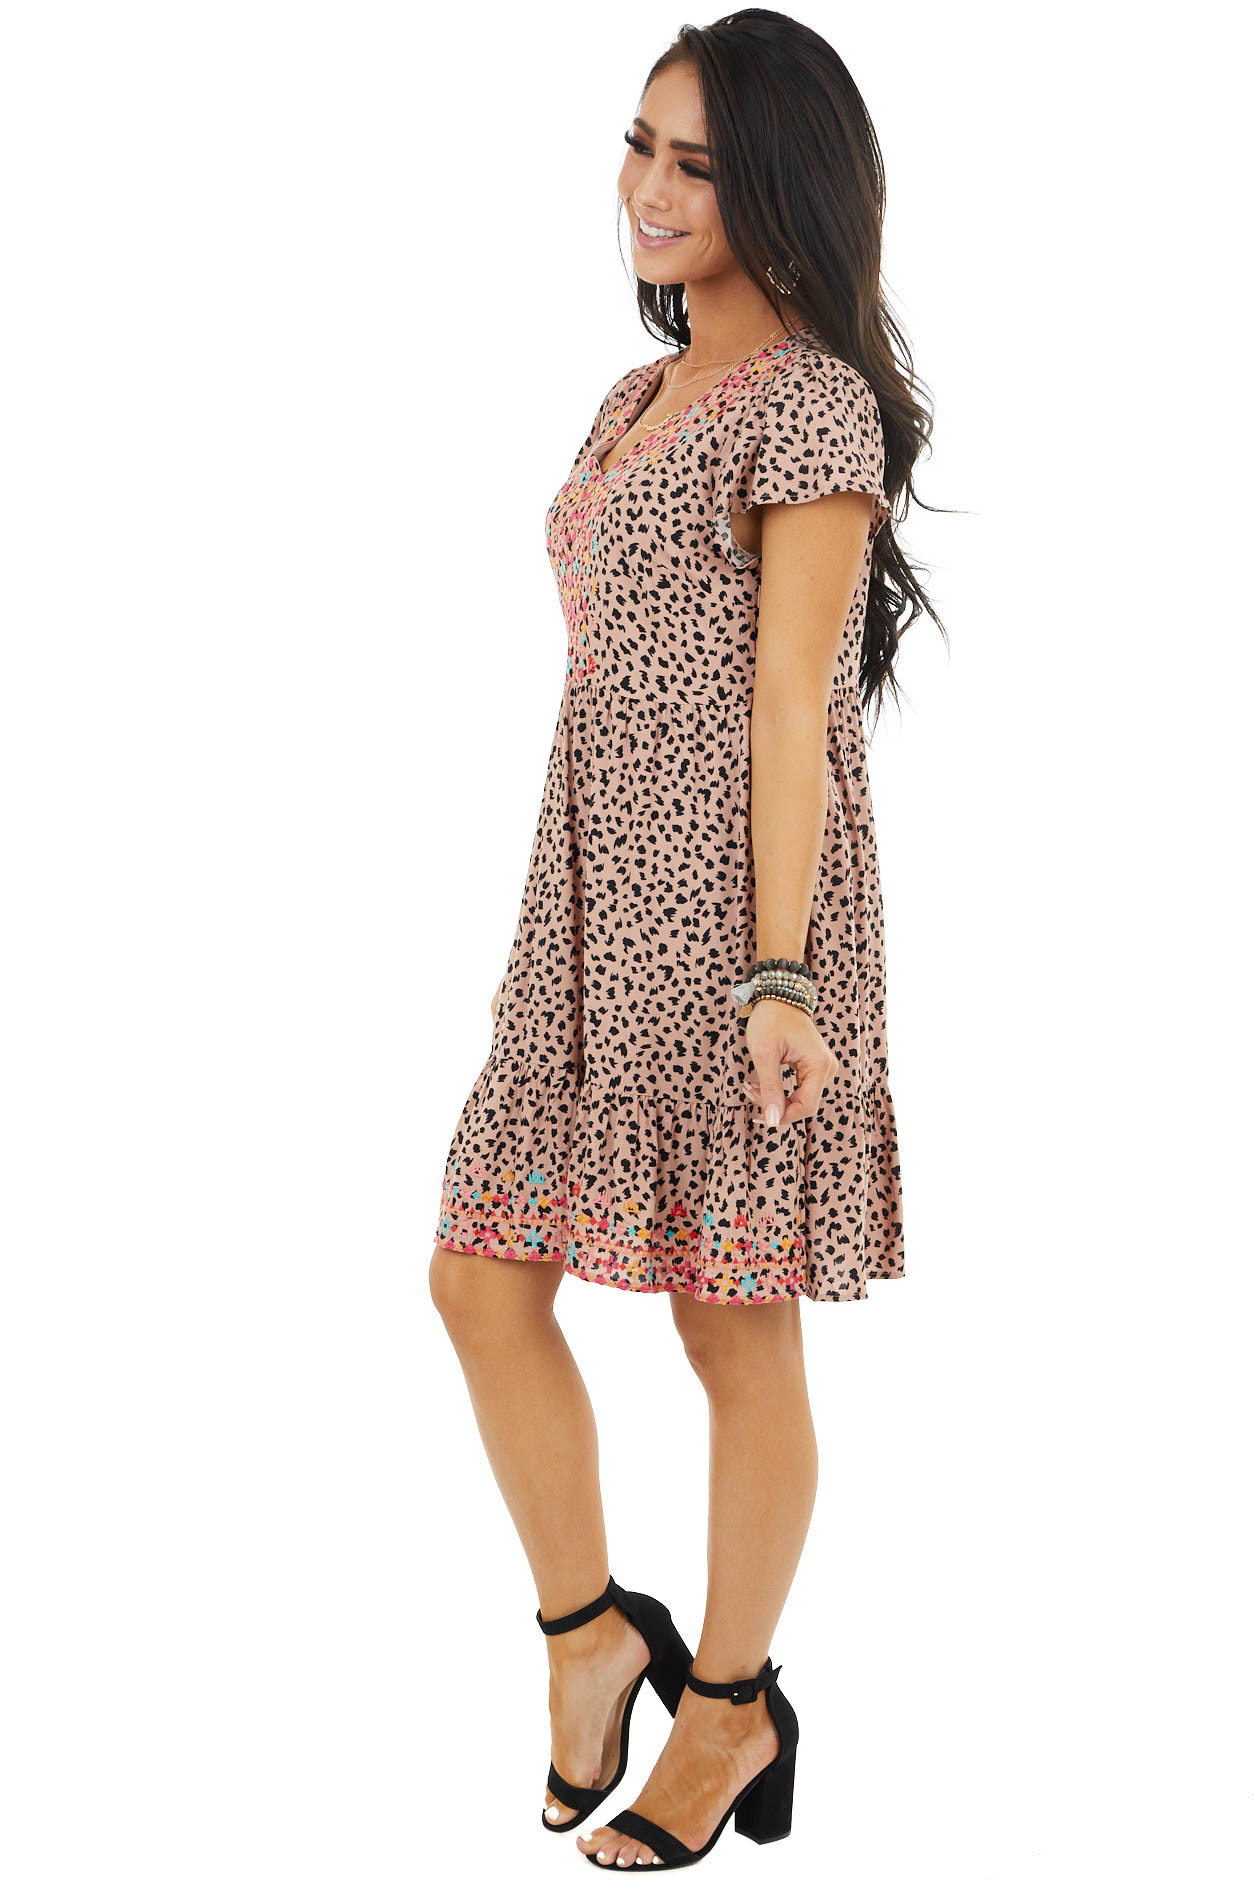 Dusty Peach Leopard Print Babydoll Dress With Embroidery